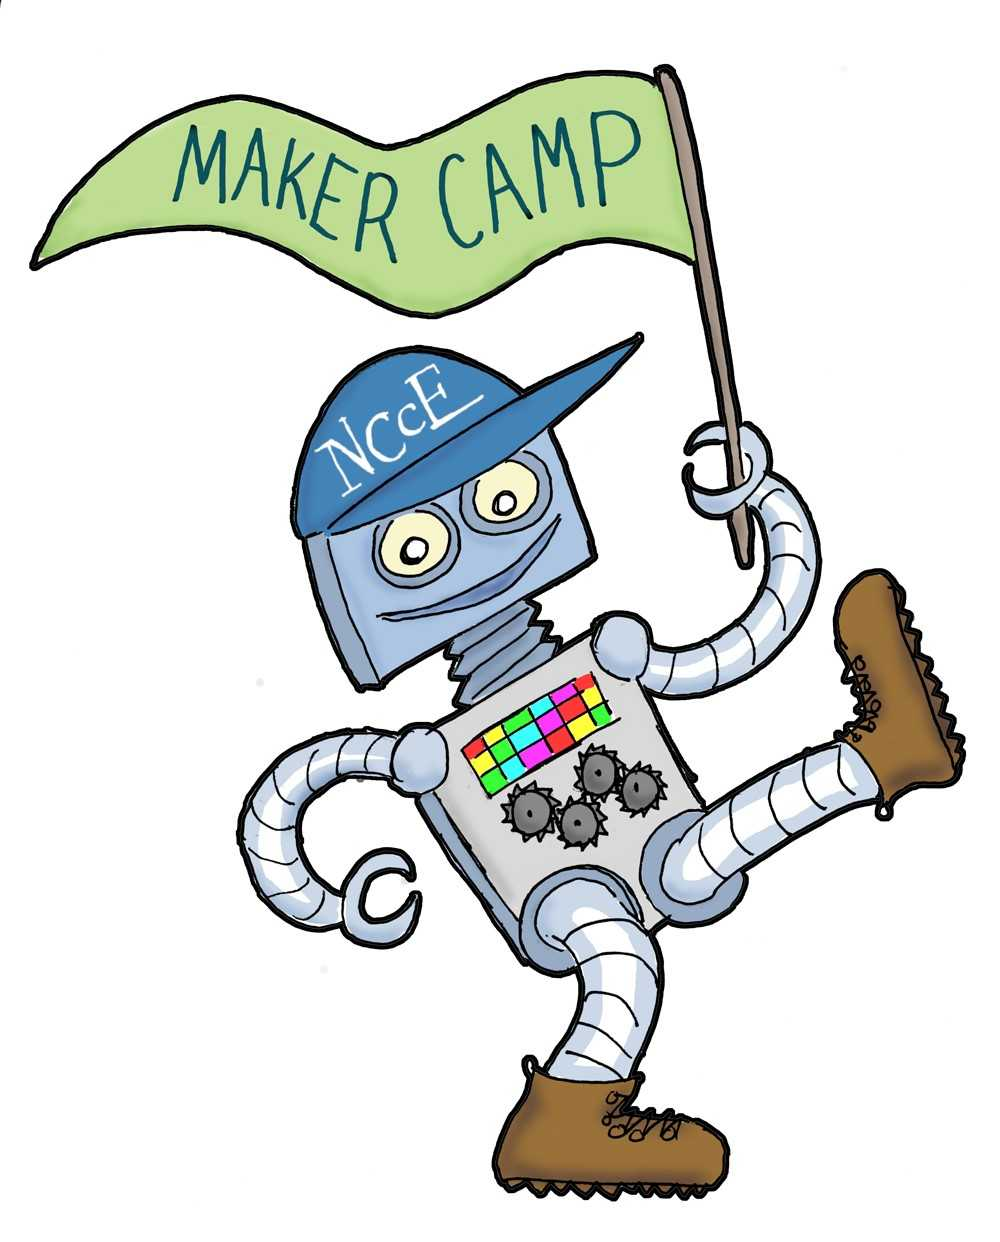 NCCE 2018 Maker Camps are back and better than ever!